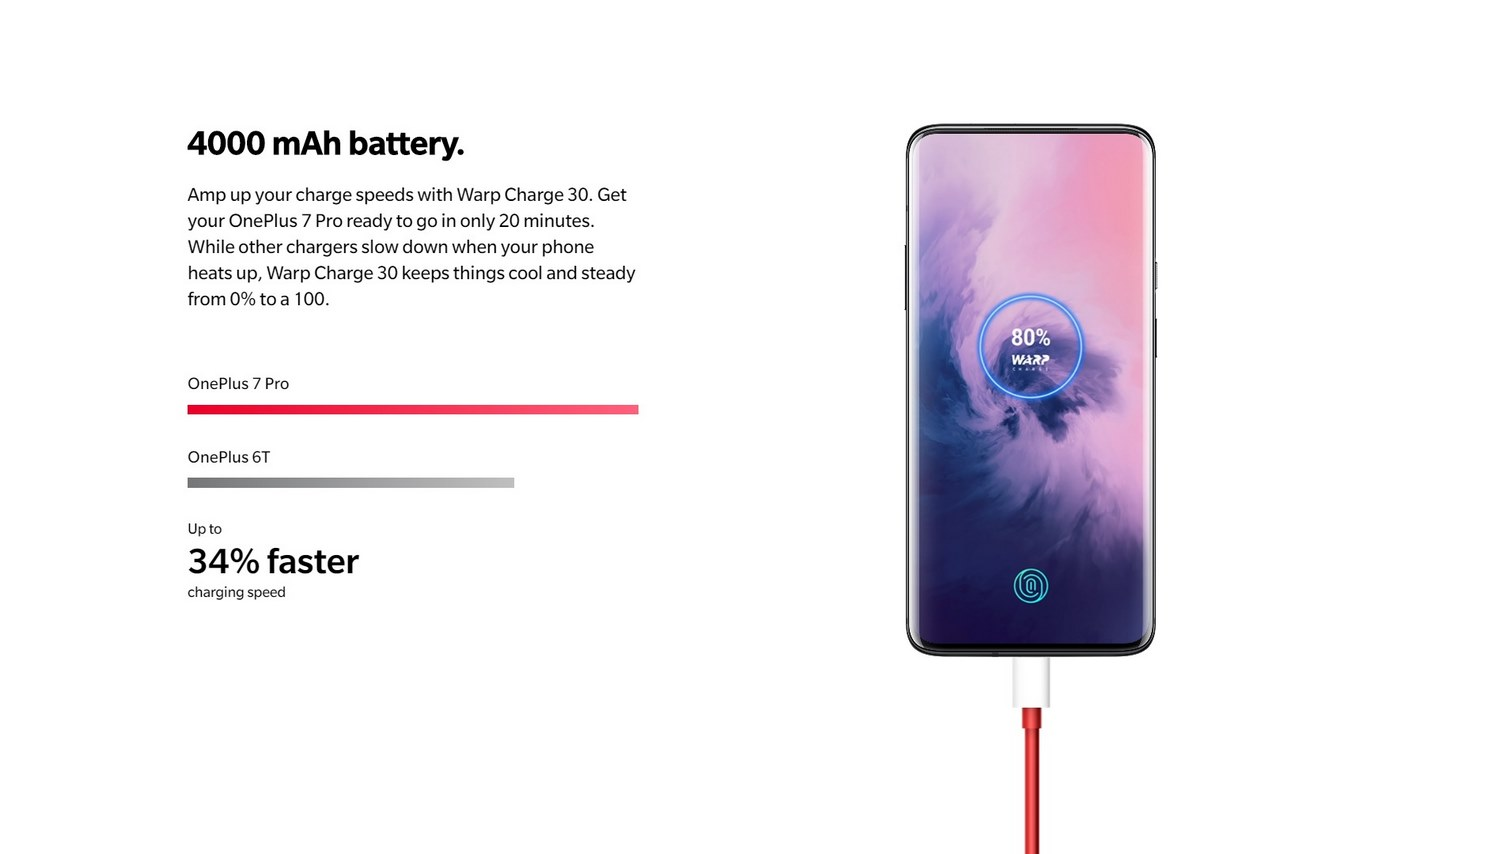 ONEPLUS 7 PRO BANNER -WARP CHARGE 30